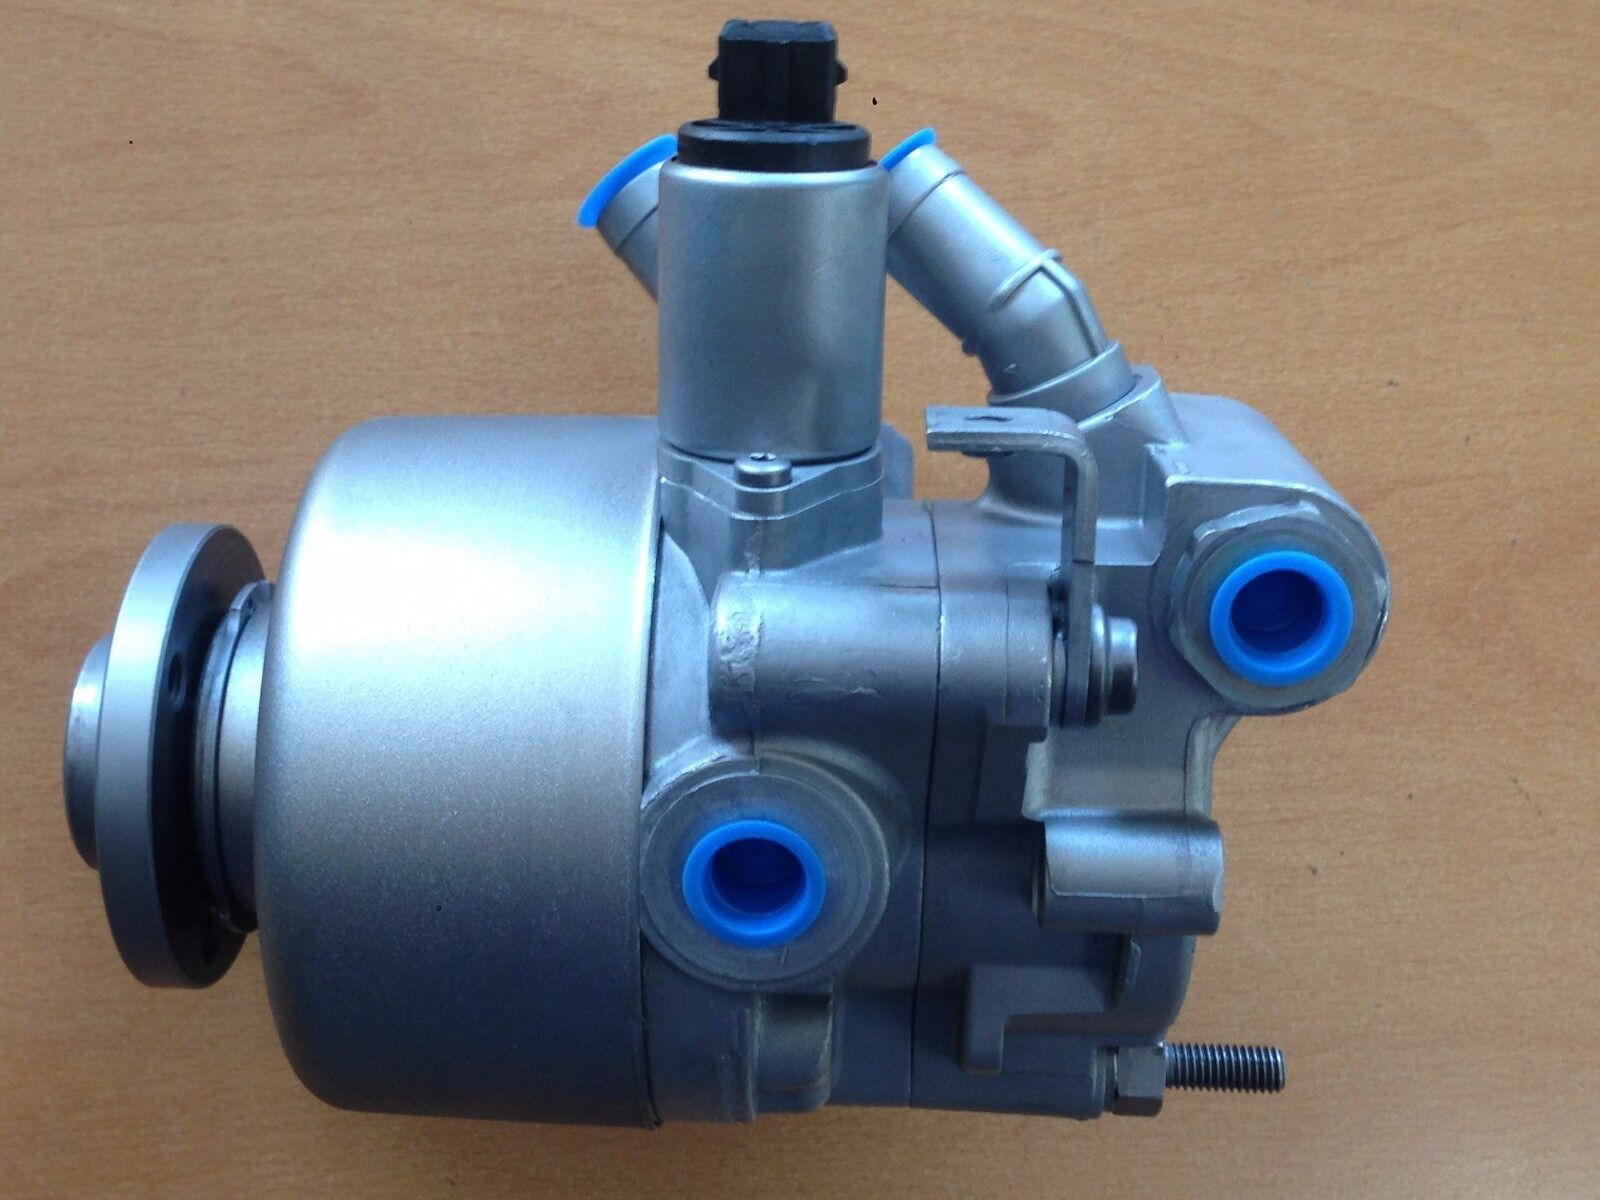 Used Mercedes-Benz SL500 Power Steering Pumps and Related